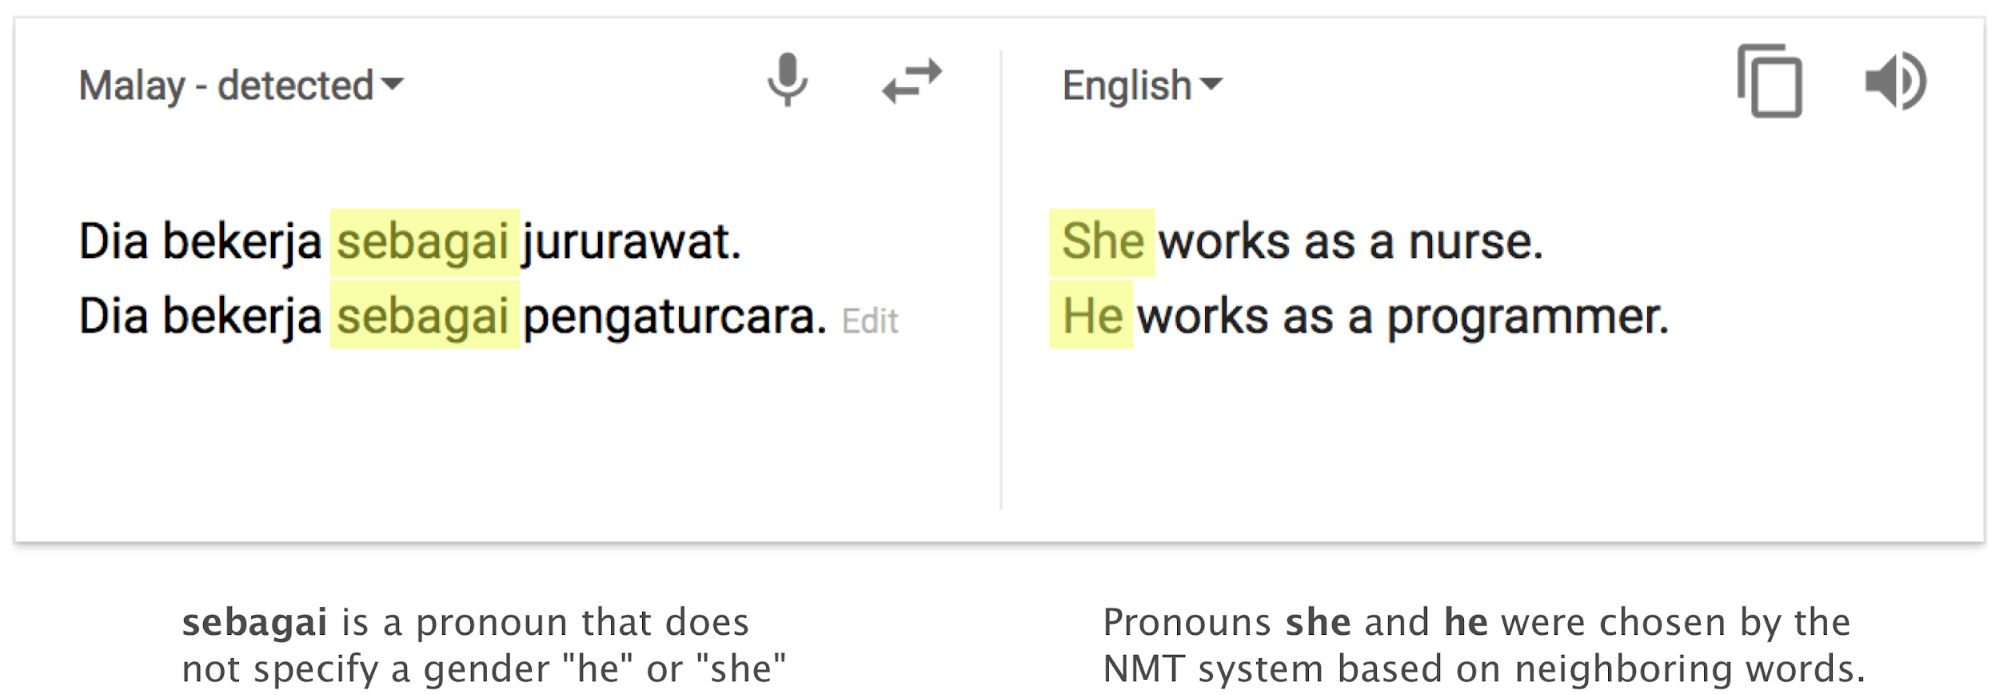 Has AI surpassed humans at translation? Not even close